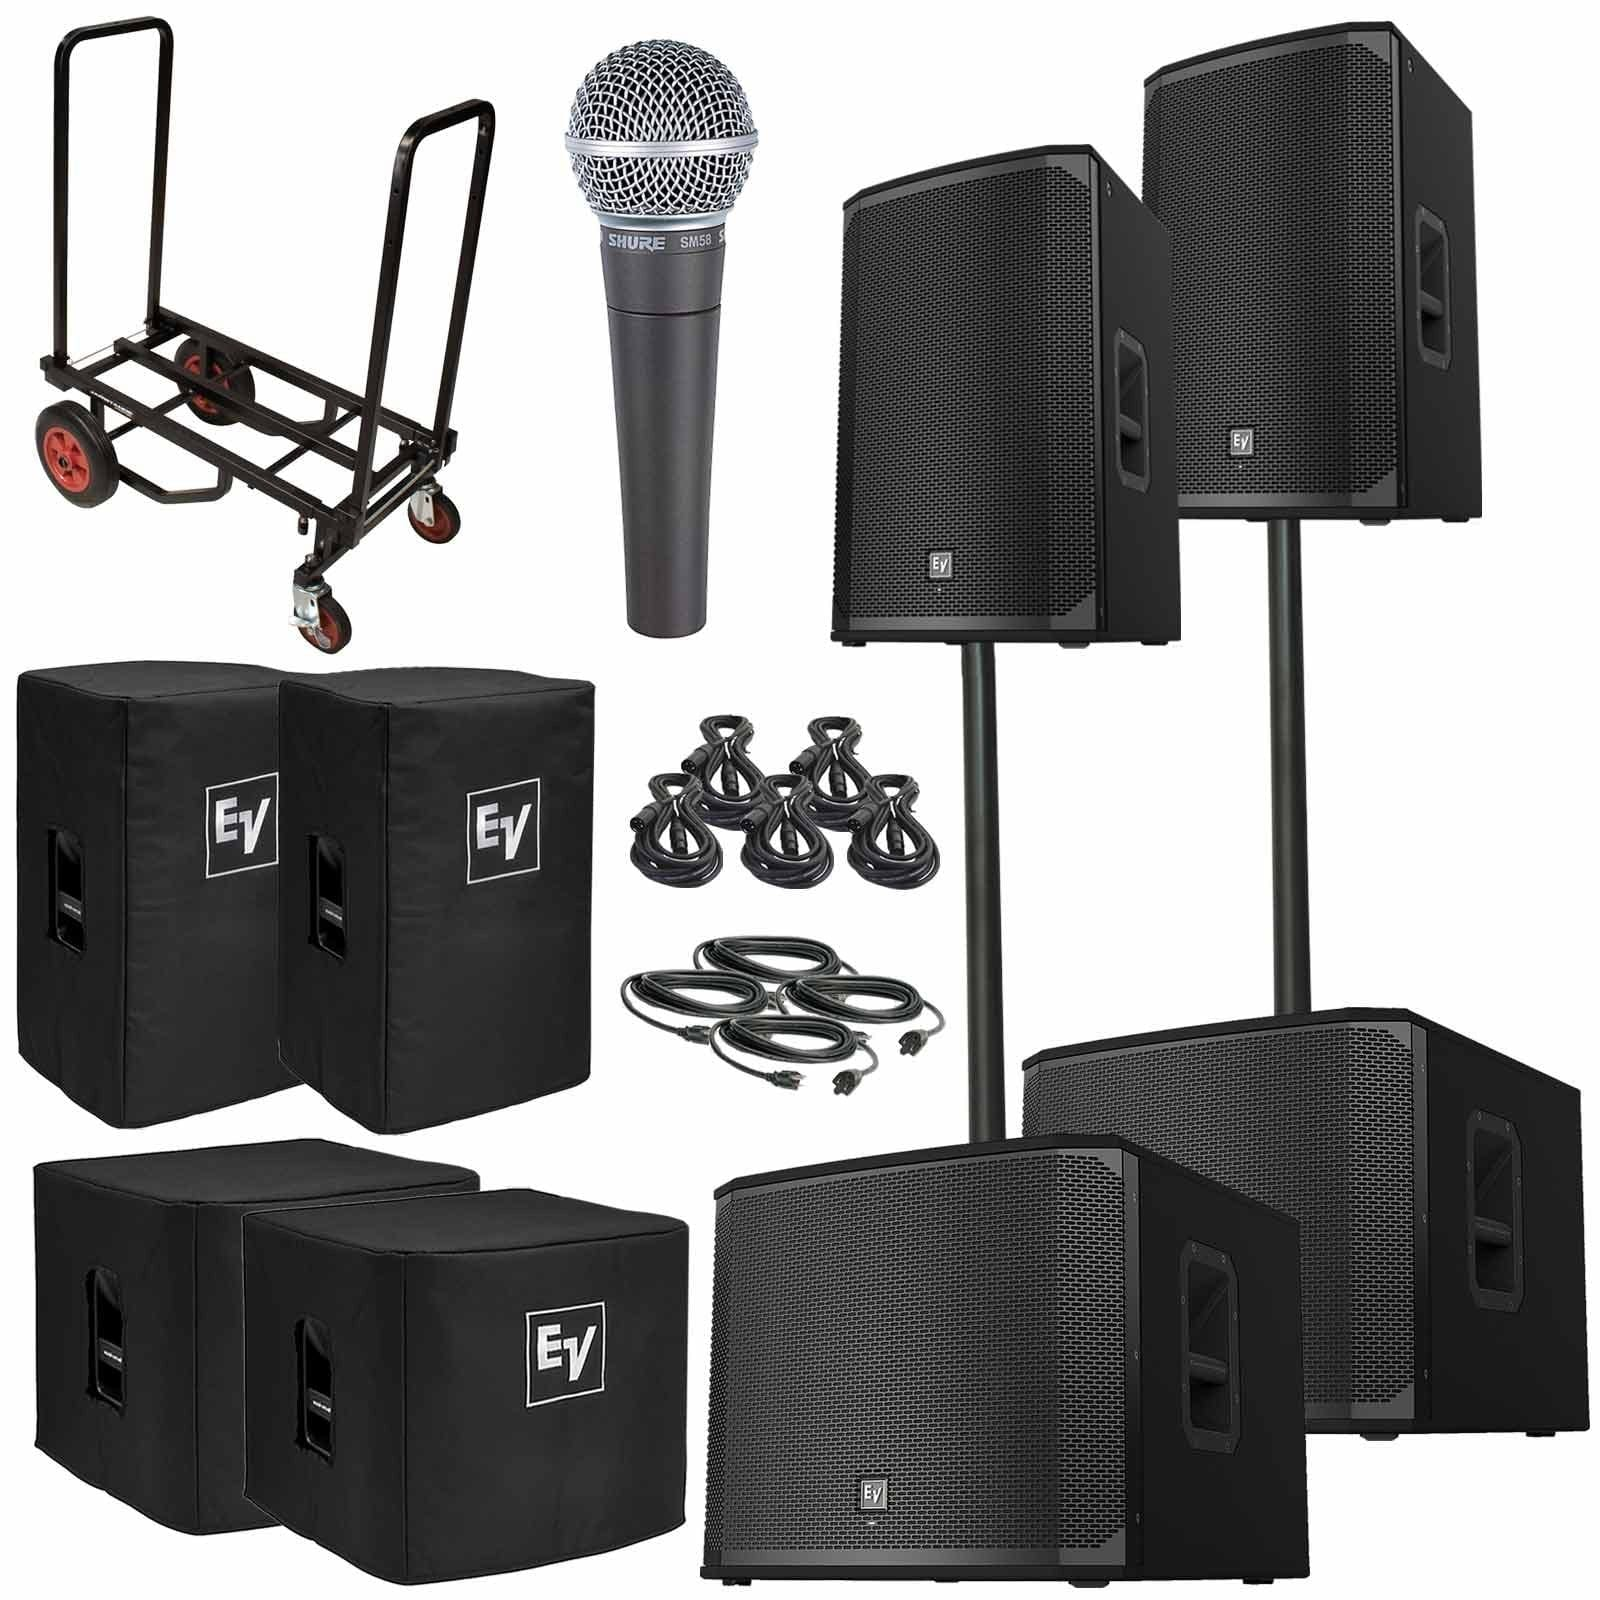 electro-voice-ekx-15p-15-powered-speaker-18-subwoofer-duo-package-193